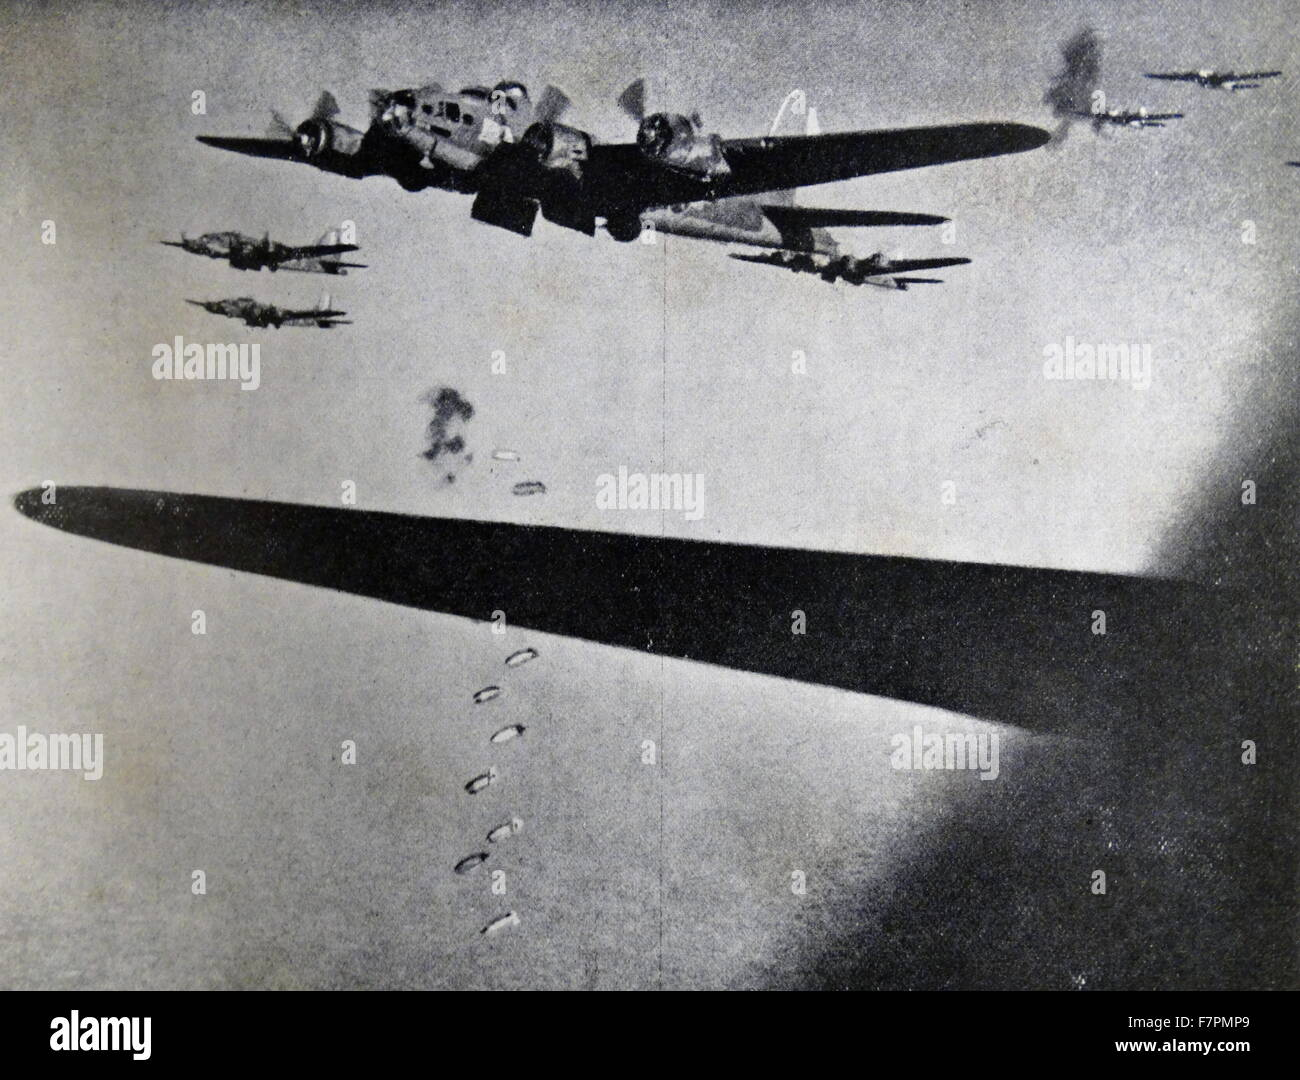 Photograph of Boeing B-17 Flying Fortresses dropping bombs during the Second World War. Dated 1941 Stock Photo